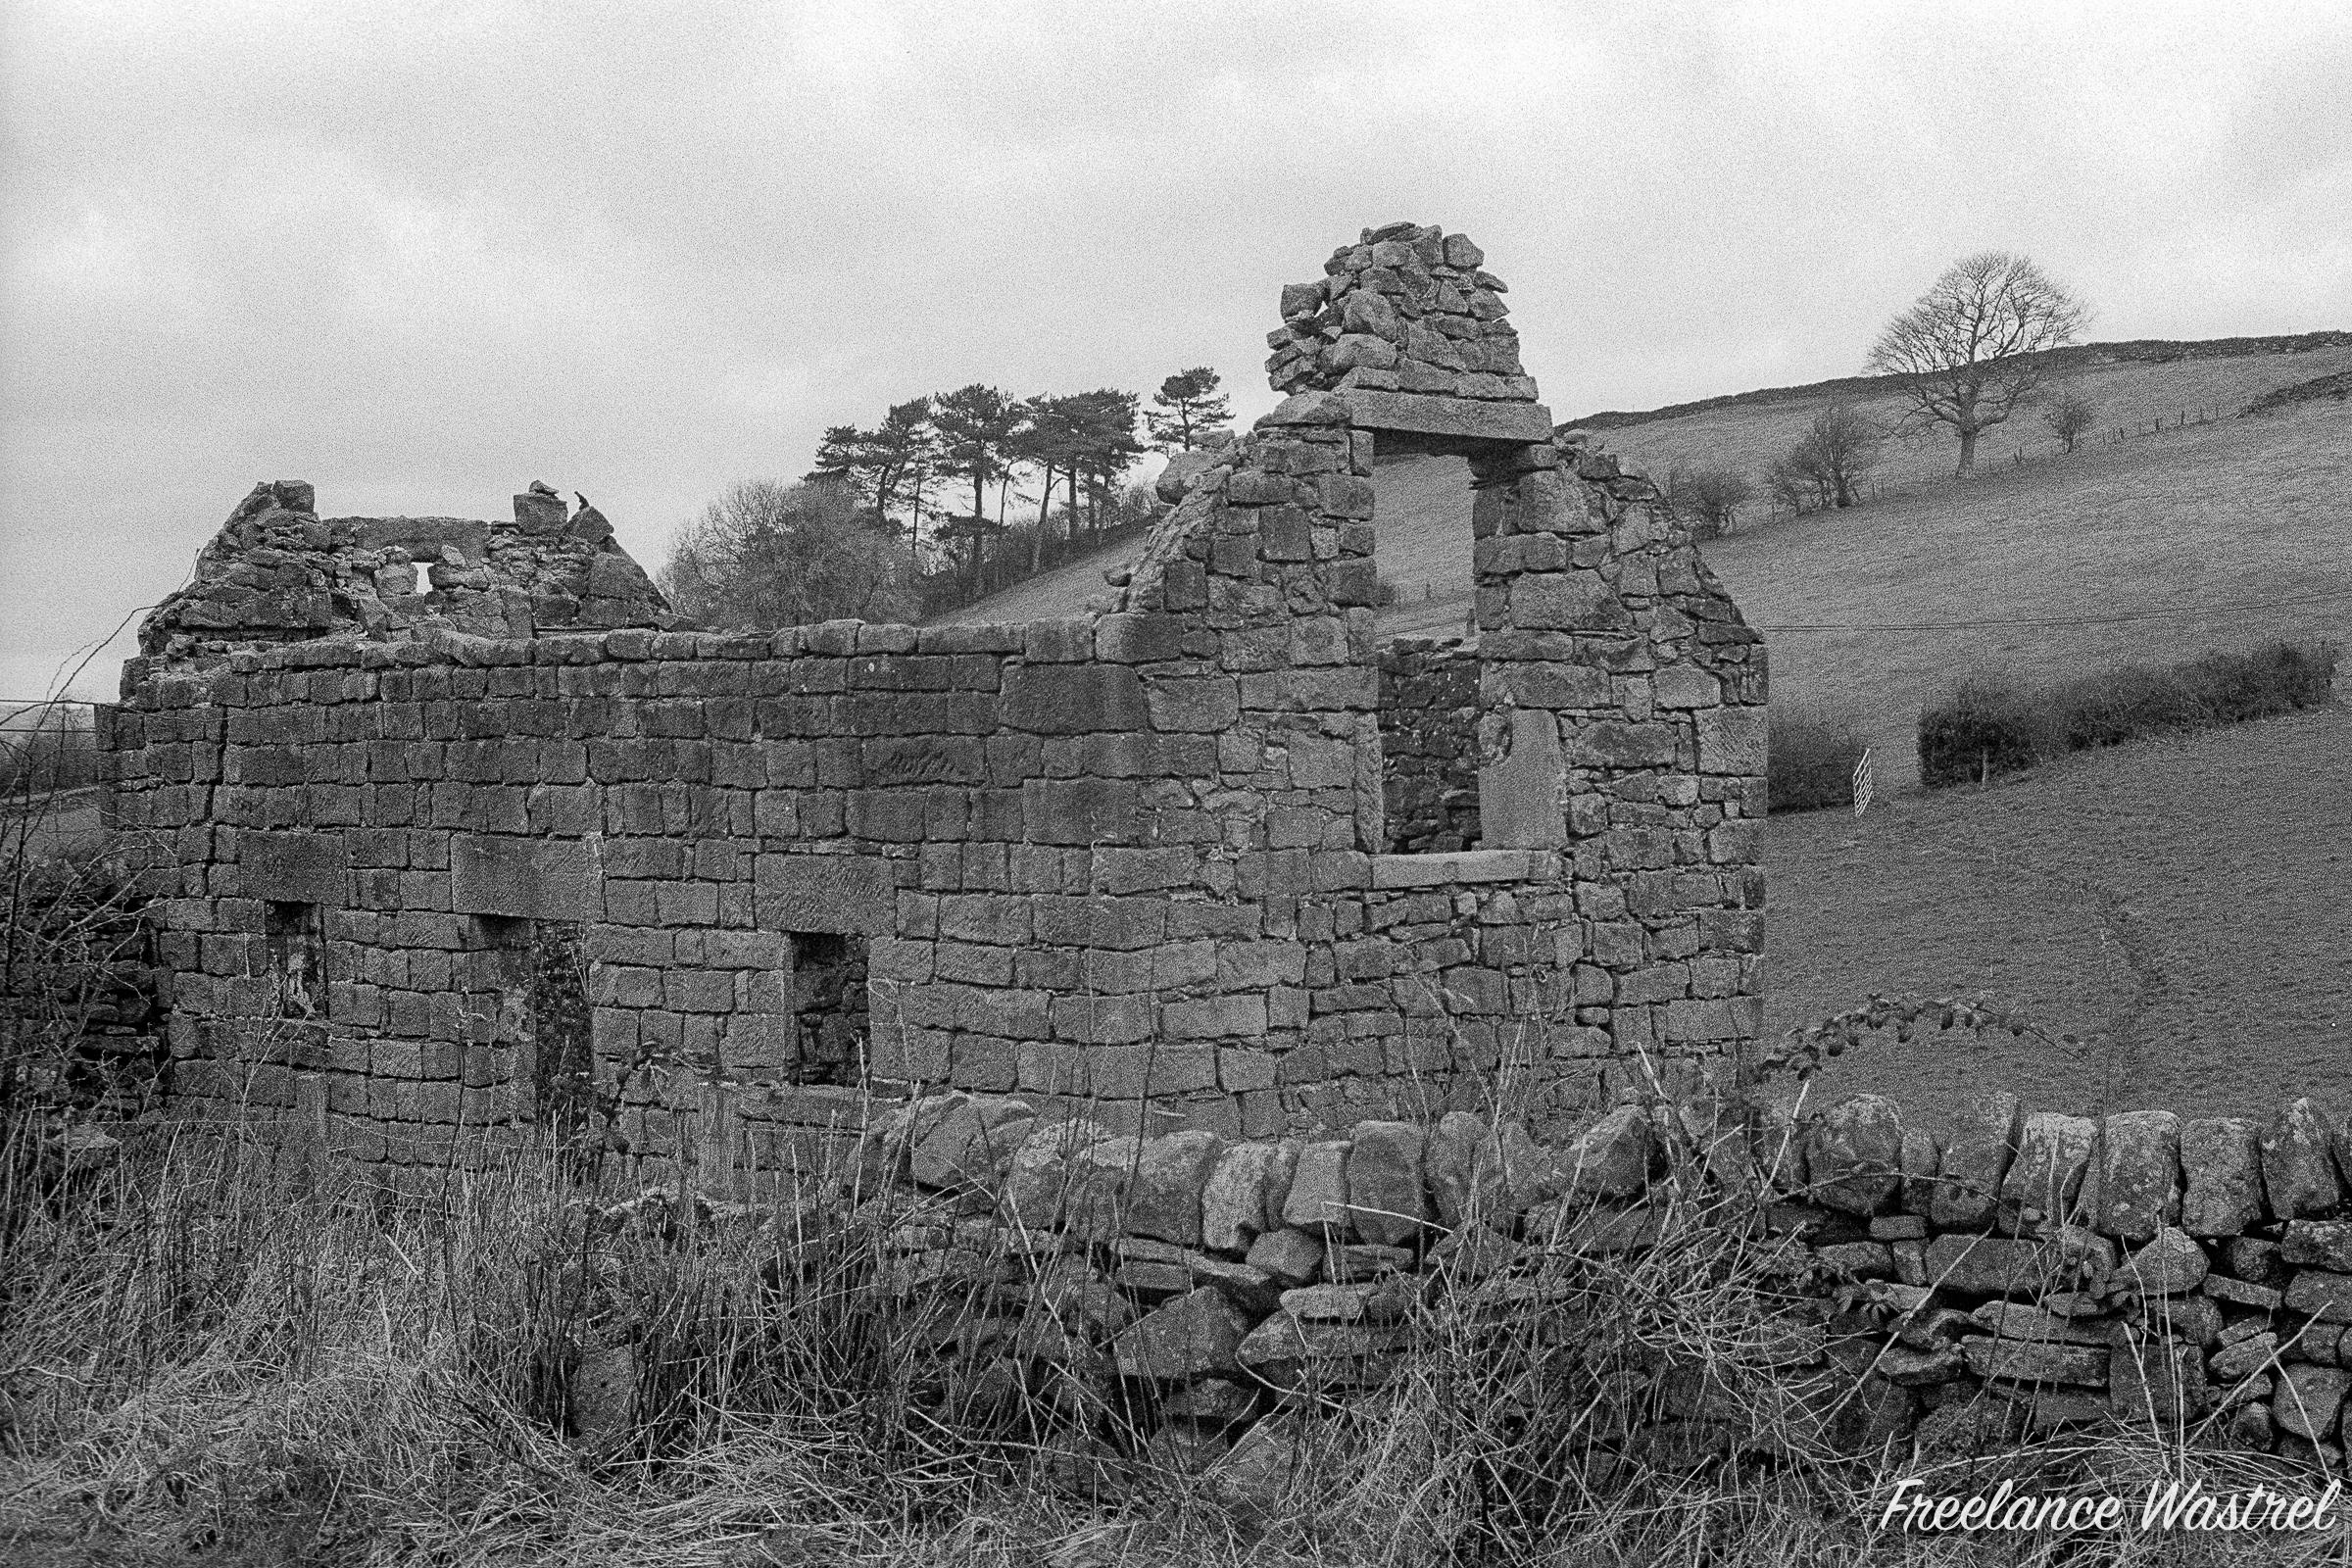 Ruined cottage, Derbyshire, January 2020